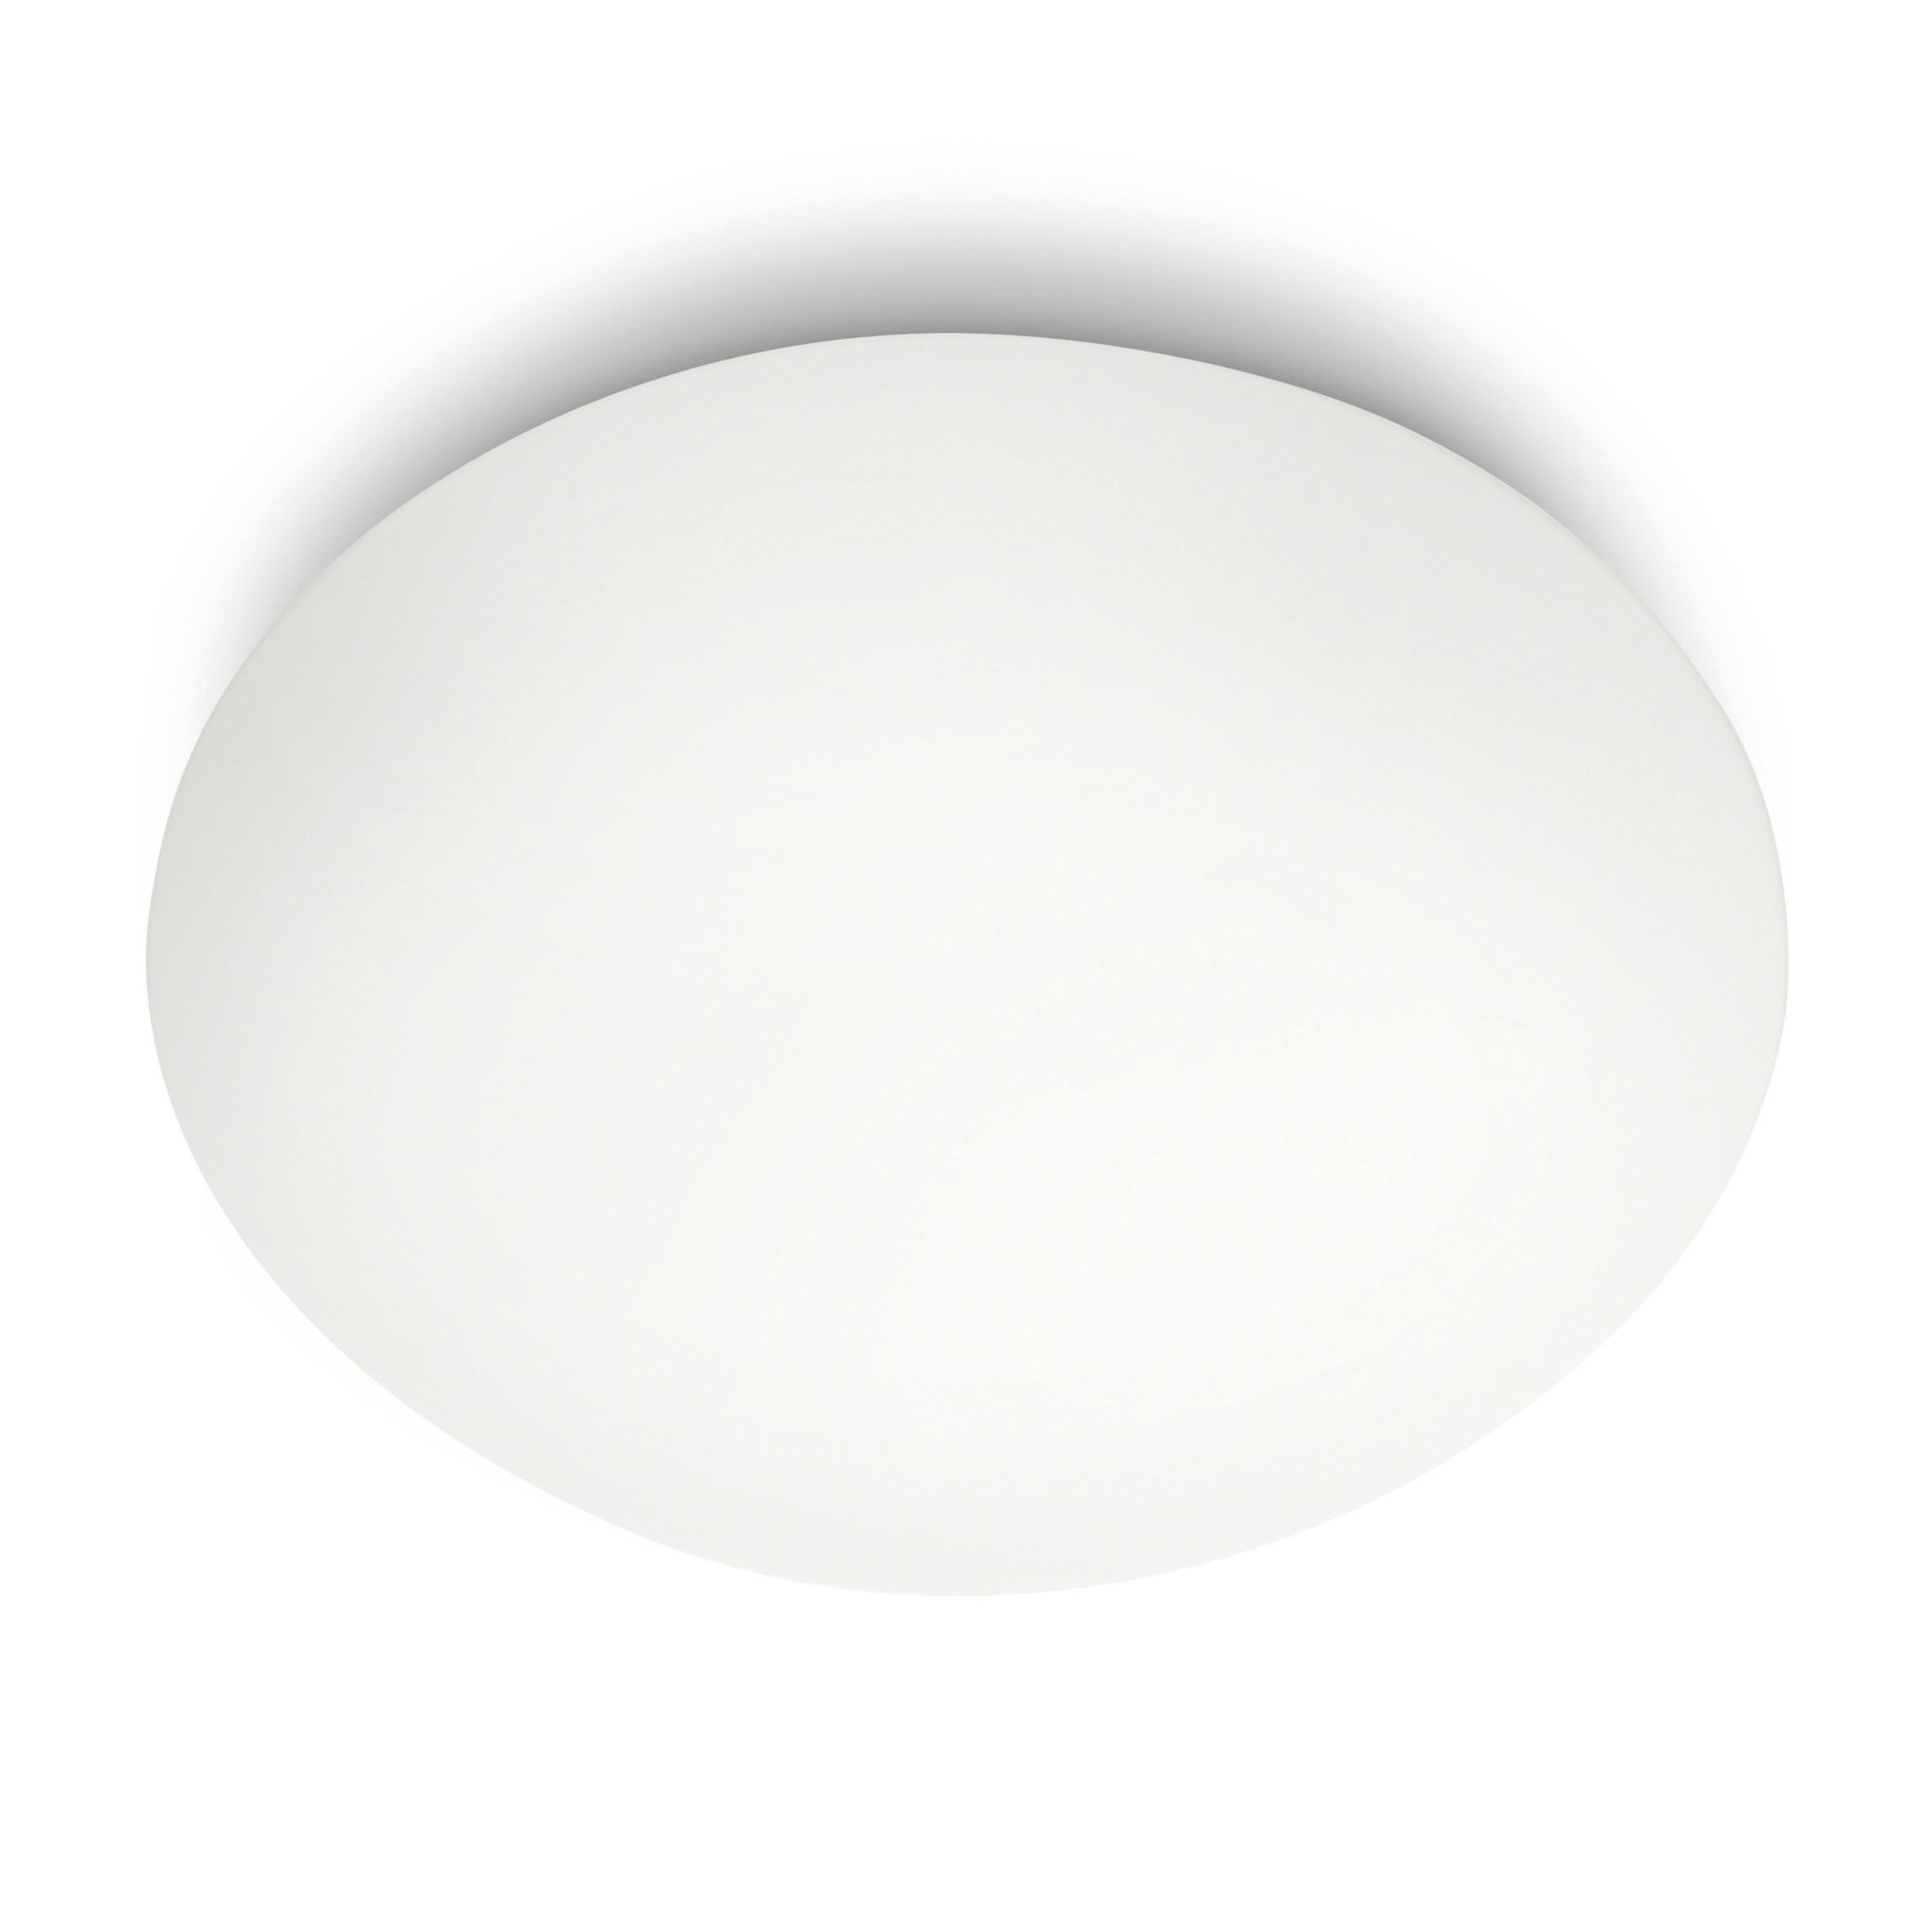 Philips mybathroom spa plafondlamp 230 v 20 w e27 wit